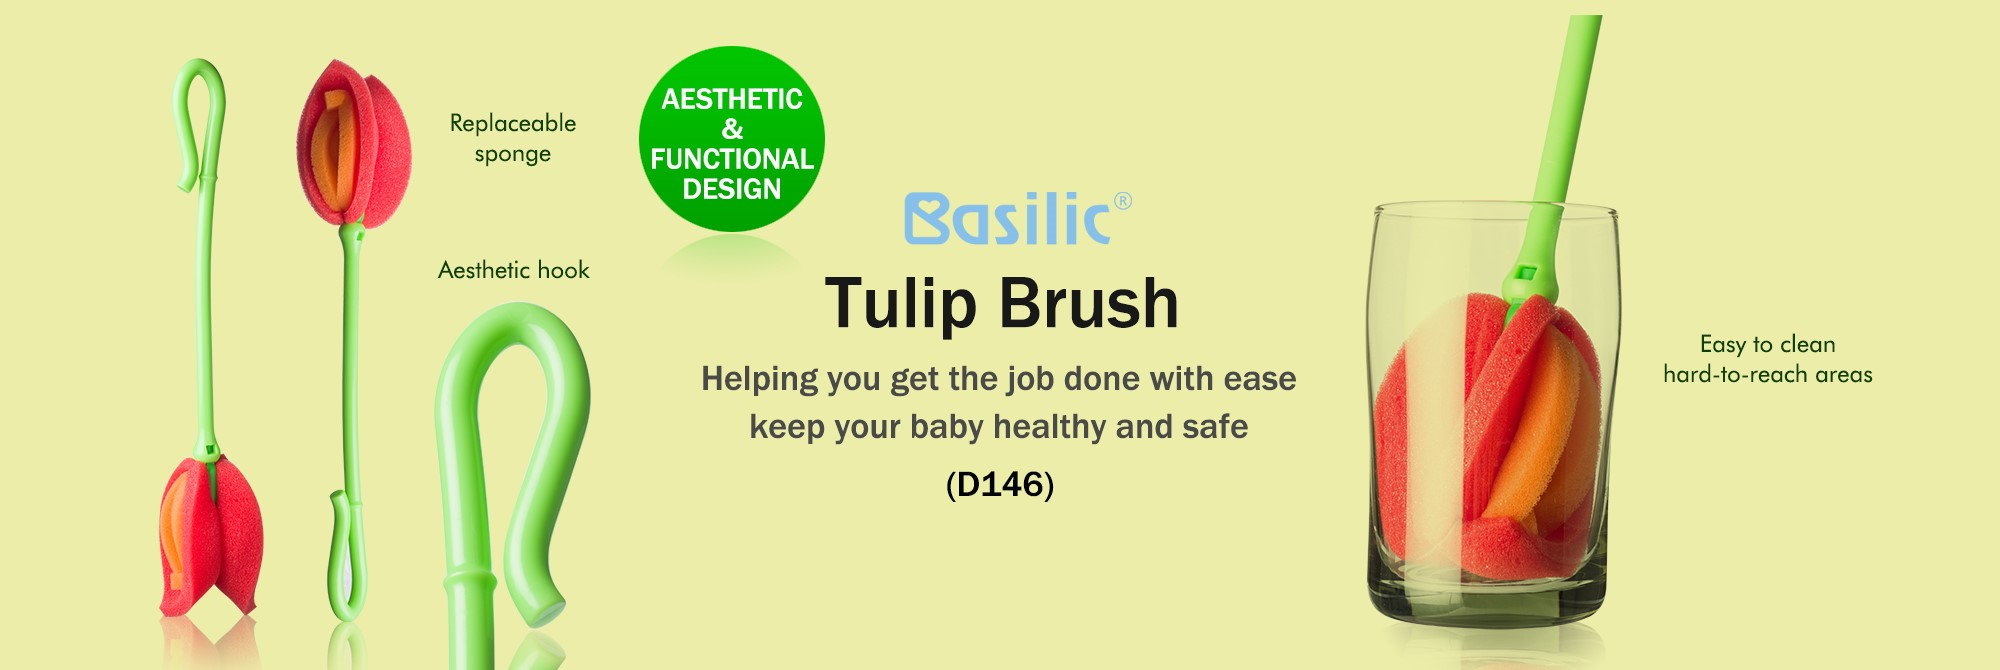 Basilic tulip brush (D146)